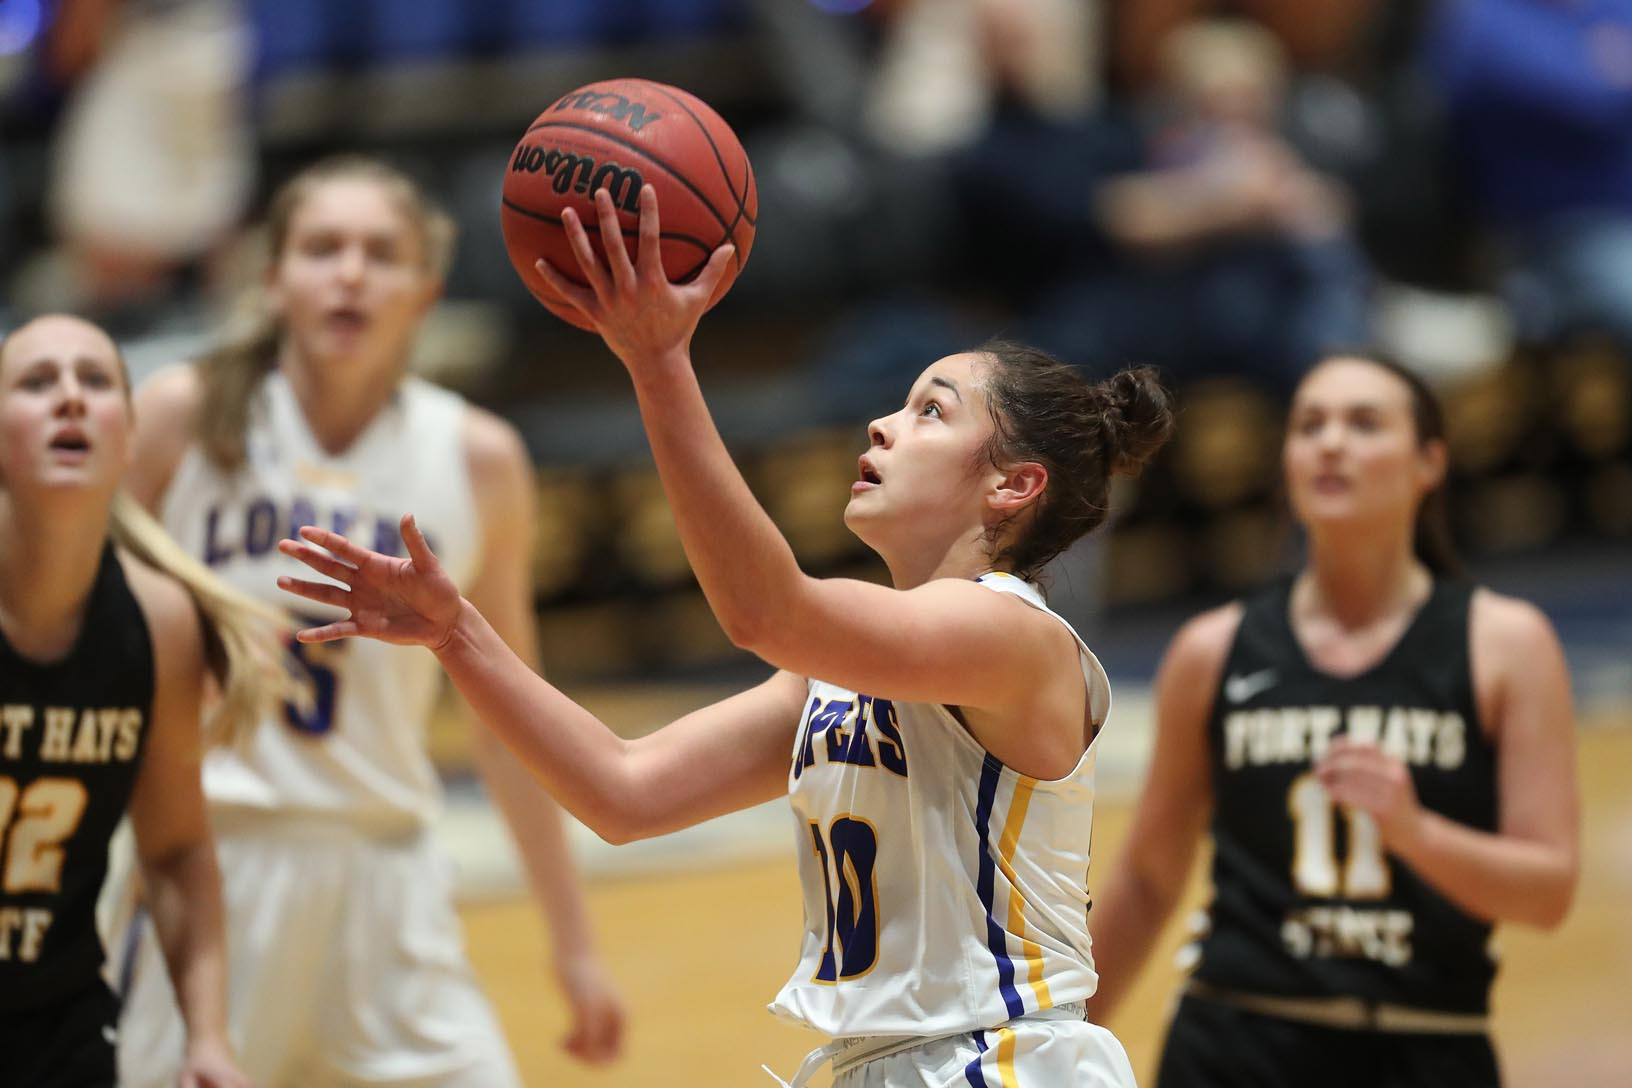 Haley Simental, who spent four seasons at the University of Denver before transferring to UNK, is averaging a team-best 12.2 points per game in her first season with the Lopers. She also leads the team in minutes played (723), 3-pointers (56) and assists (92). (Photos by Corbey R. Dorsey, UNK Communications)